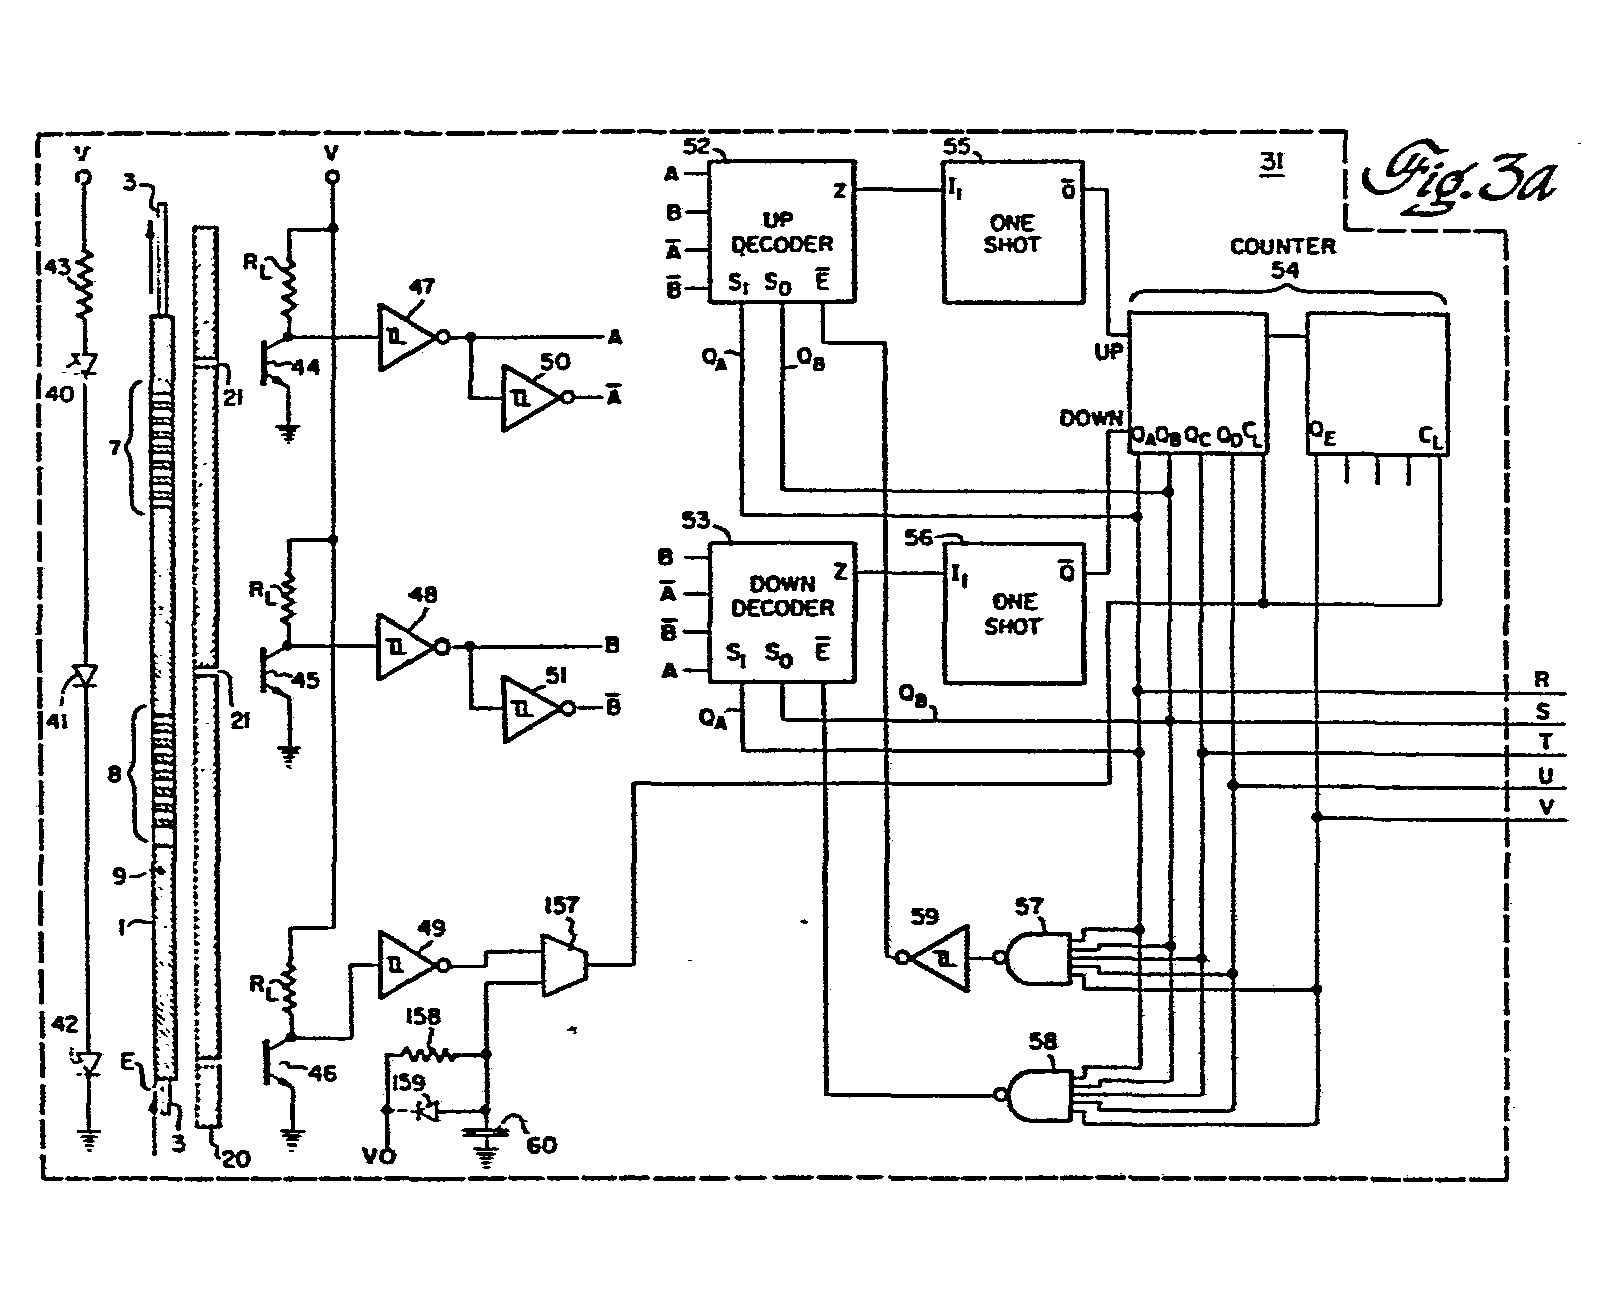 Optoelectronic Incremental Position Encoder Patent 0076509 Circuit Diagram Of Function Generator The Nonlinear Comprises Parallel Coupled Amplifier Stages Outputs Which Are Selectively Clamped Depending On